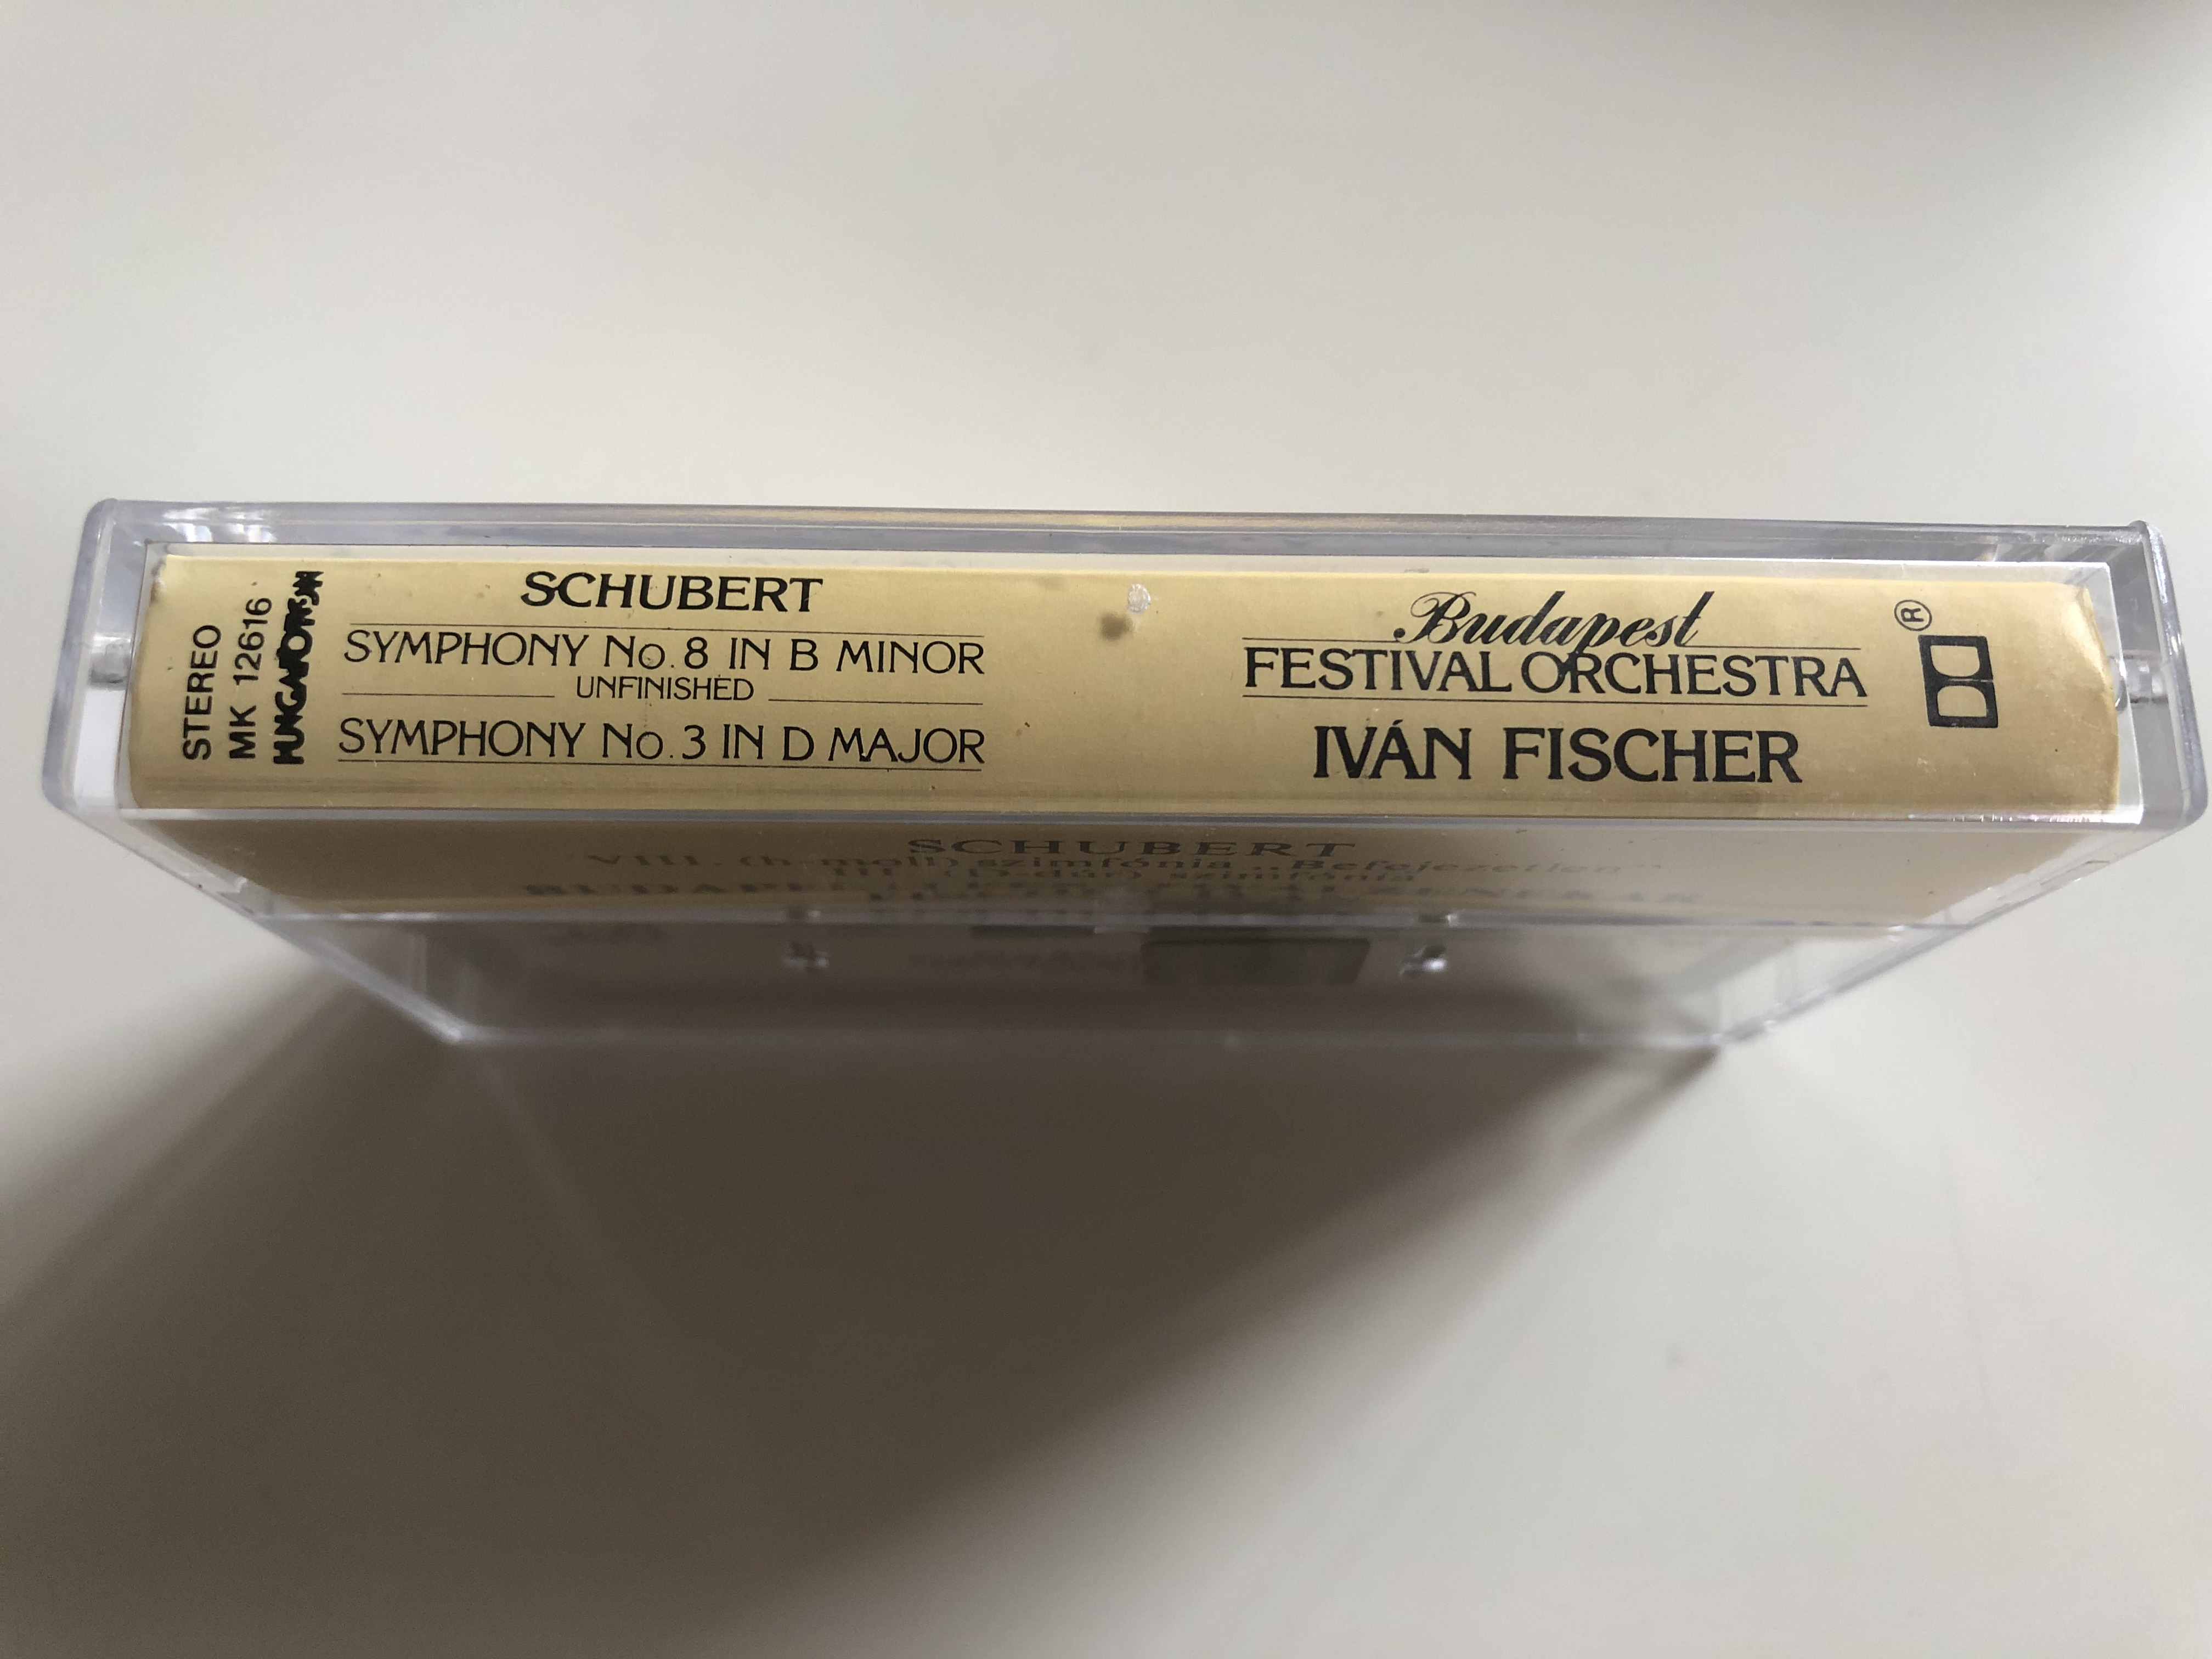 schubert-symphony-no.-8-in-b-minor-unfinished-symphony-no.-3-in-d-major-budapest-festival-orchestra-ivan-fischer-hungaroton-cassette-stereo-mk-12616-4-.jpg